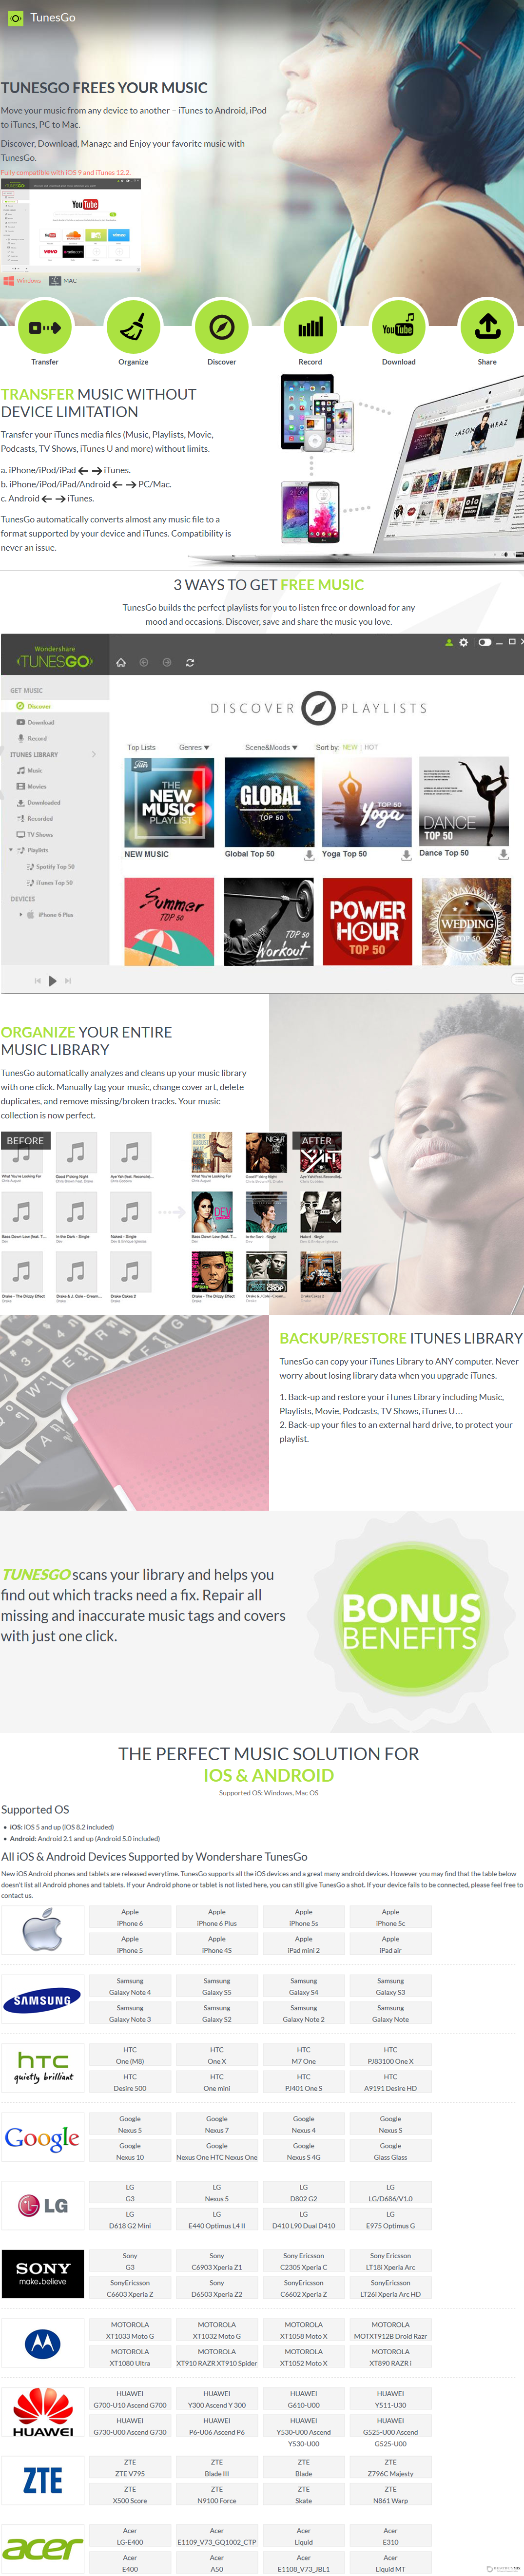 Wondershare TunesGo for Android (Mac) Discount Coupon Code